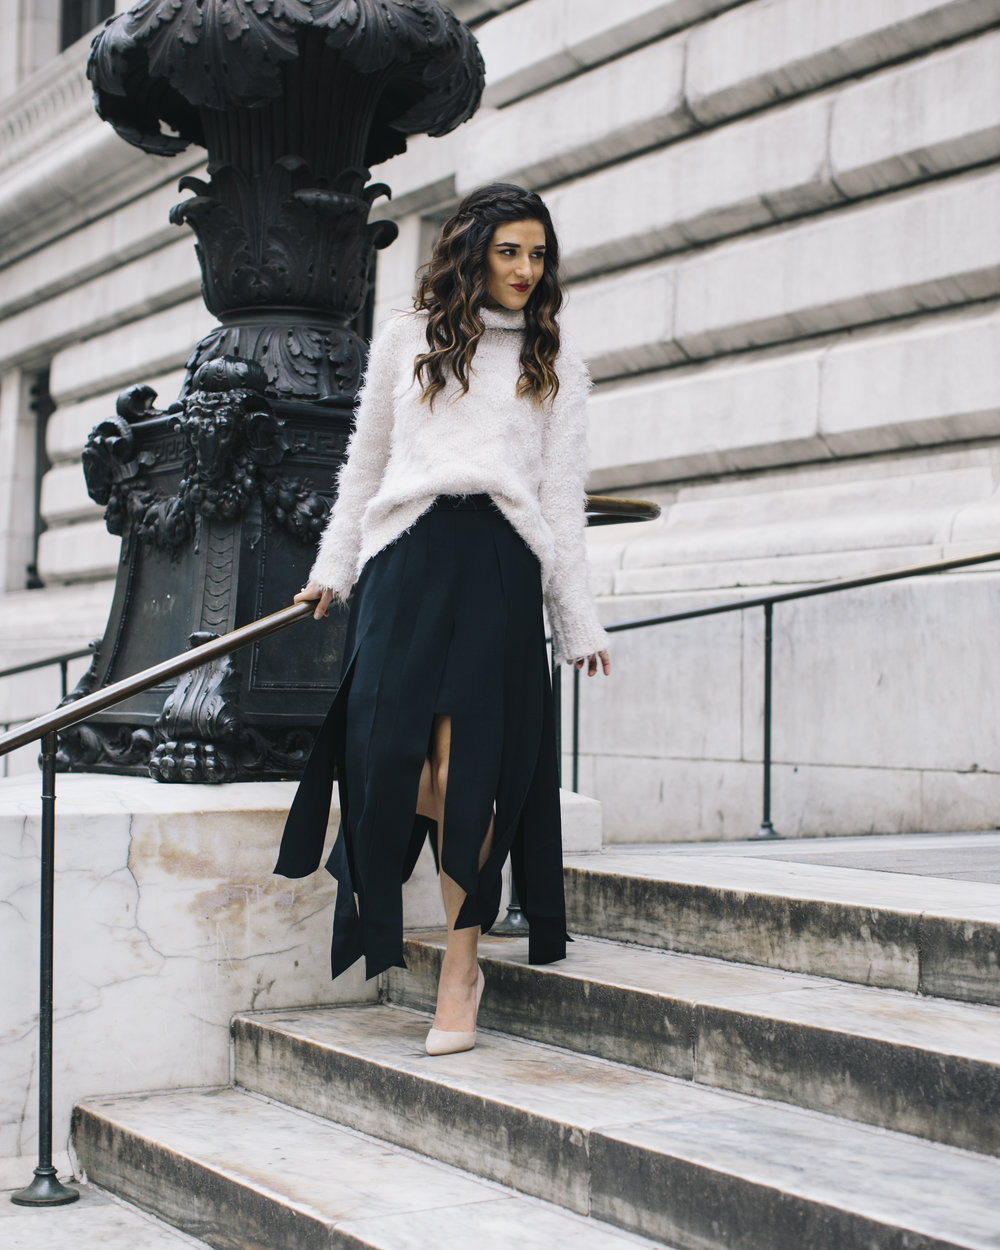 Shopping with Octer Fringe Skirt Louboutins & Love Fashion Blog Esther Santer NYC Street Style Blogger Outfit OOTD Buy Trendy Sweater Cozy Zara Steve Madden Nude Heels Neutral Colors Navy White Winter Photoshoot New York City Hair Beautiful Women Girl.jpg